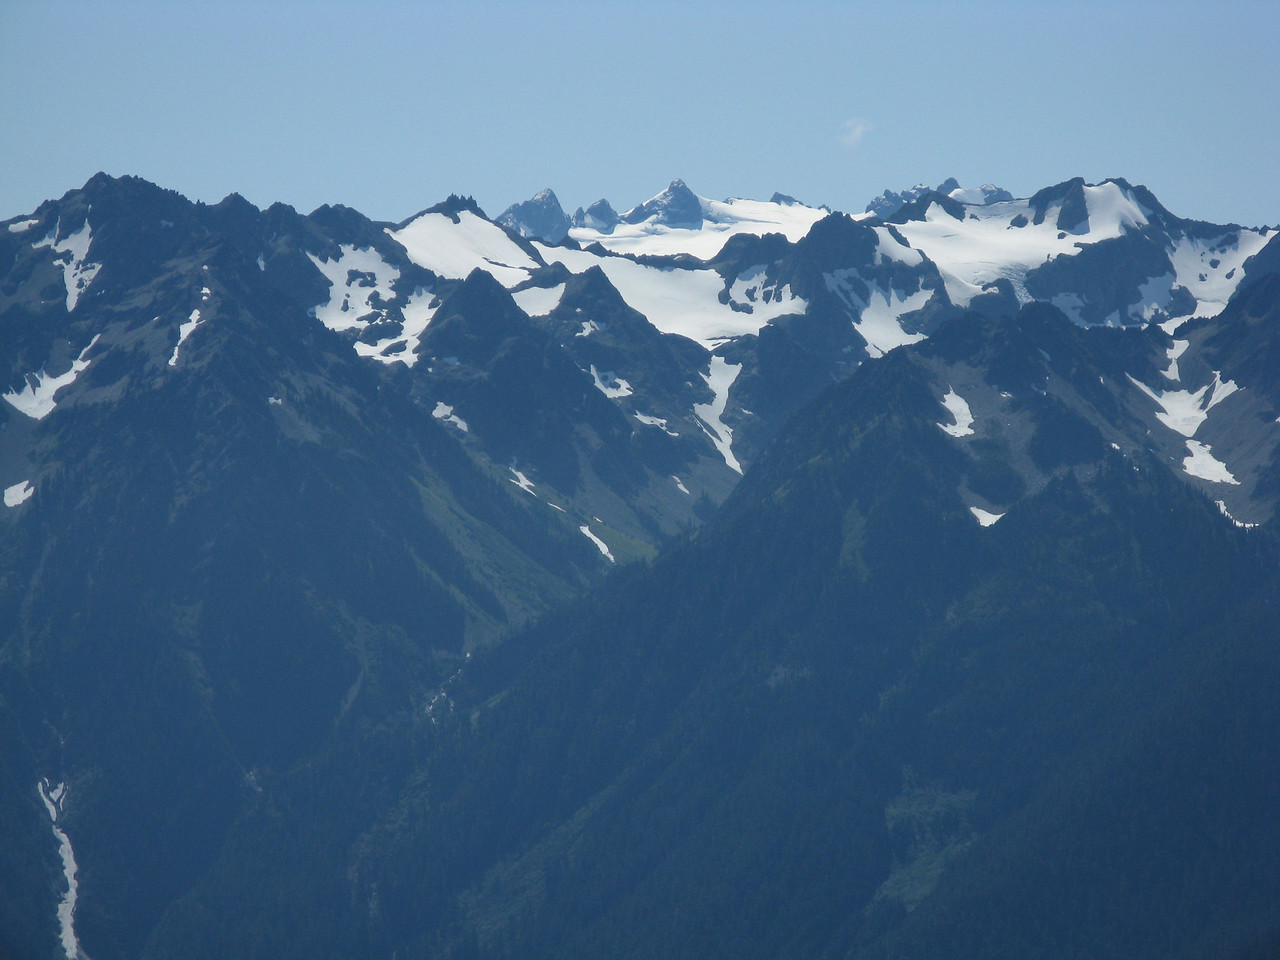 I can't name all the peaks and all the glaciers, but Mount Olympus is the one in the center.